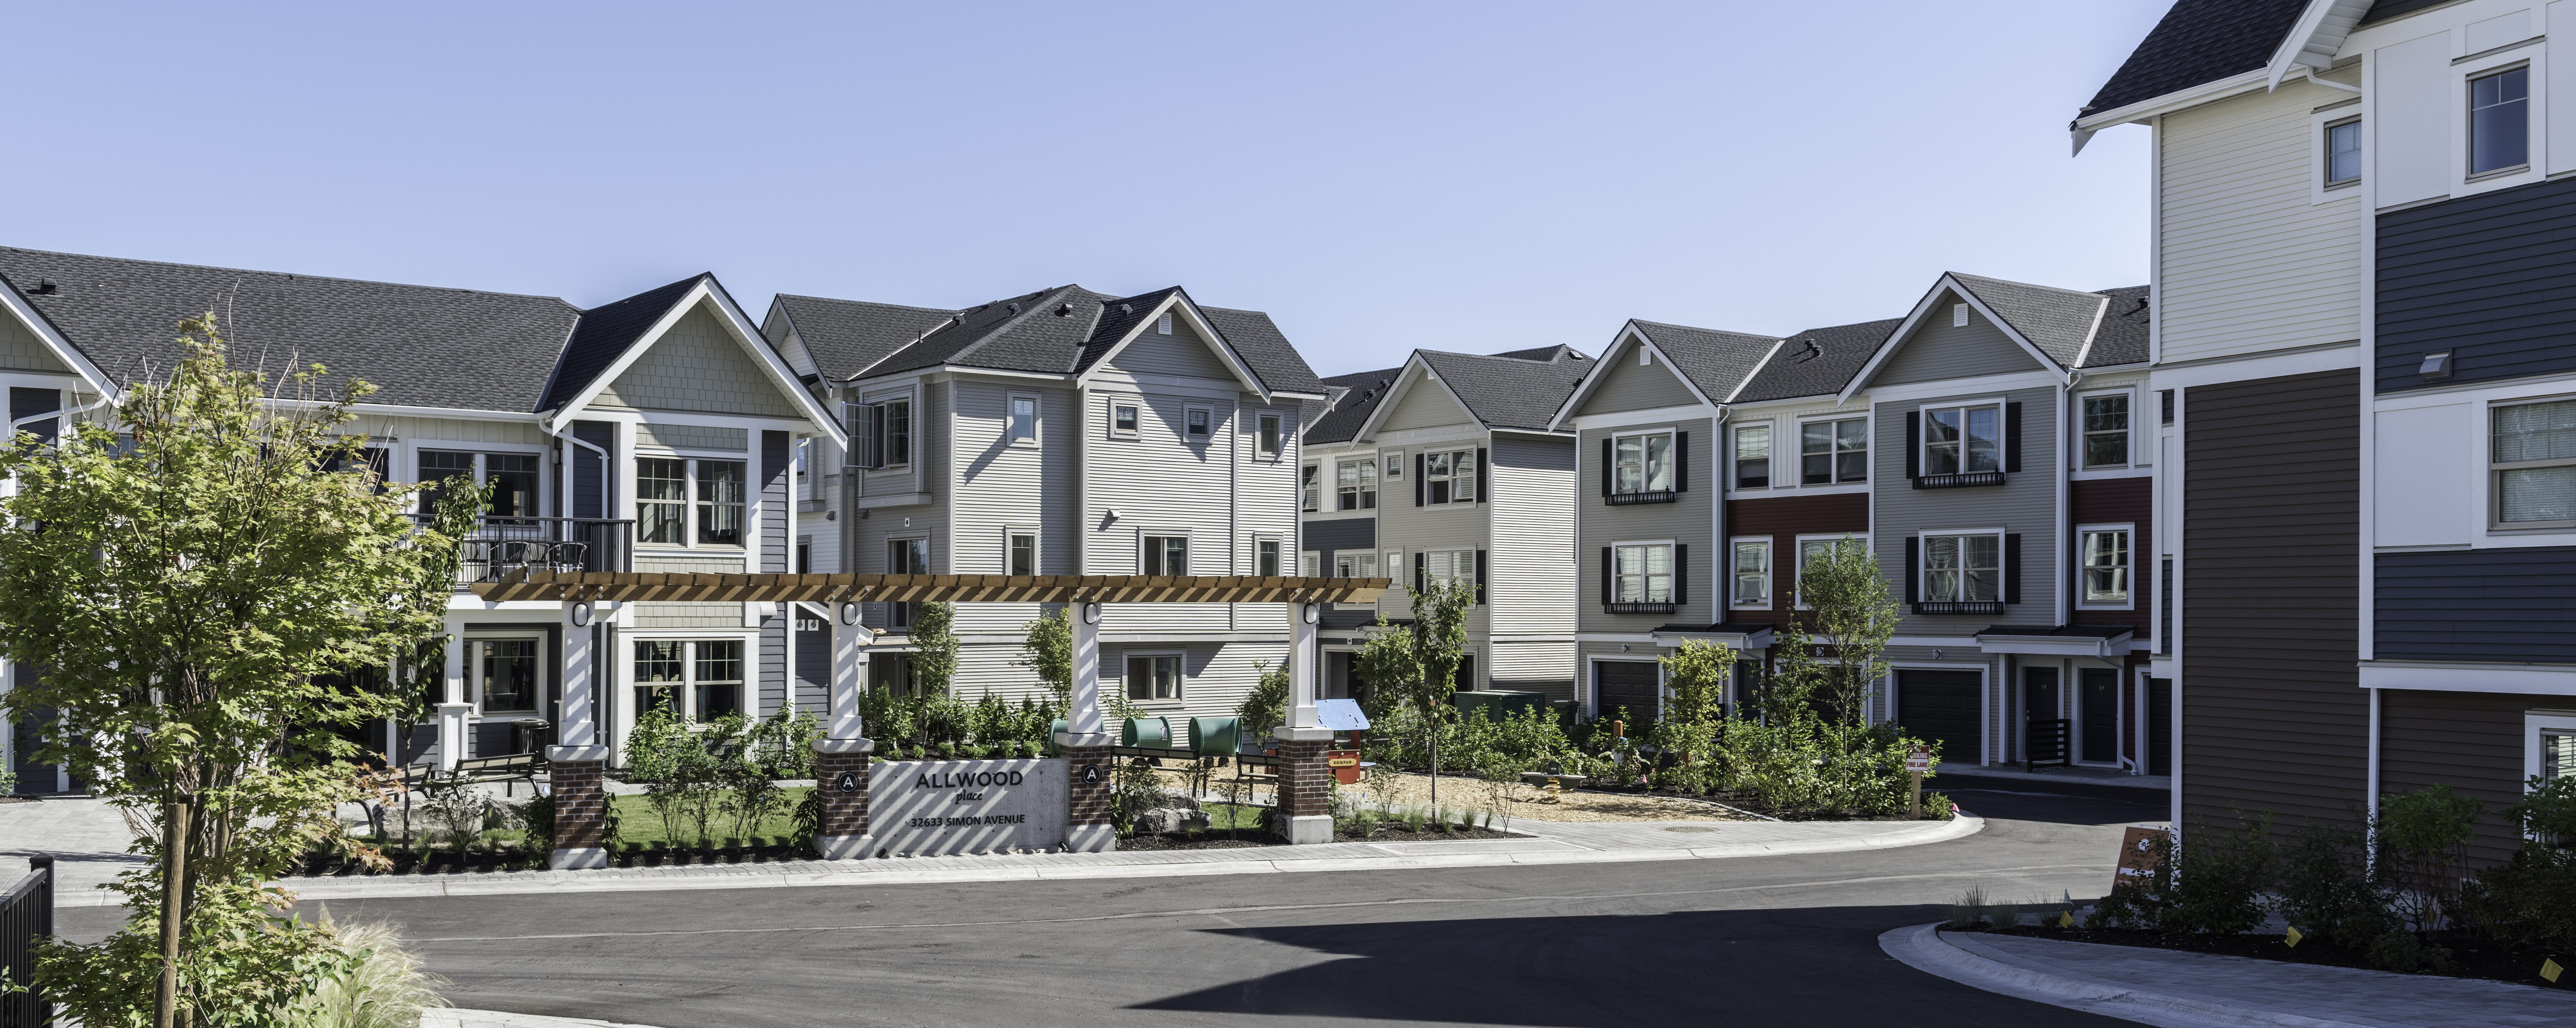 Allwood Place   Abbotsford   Onni Group